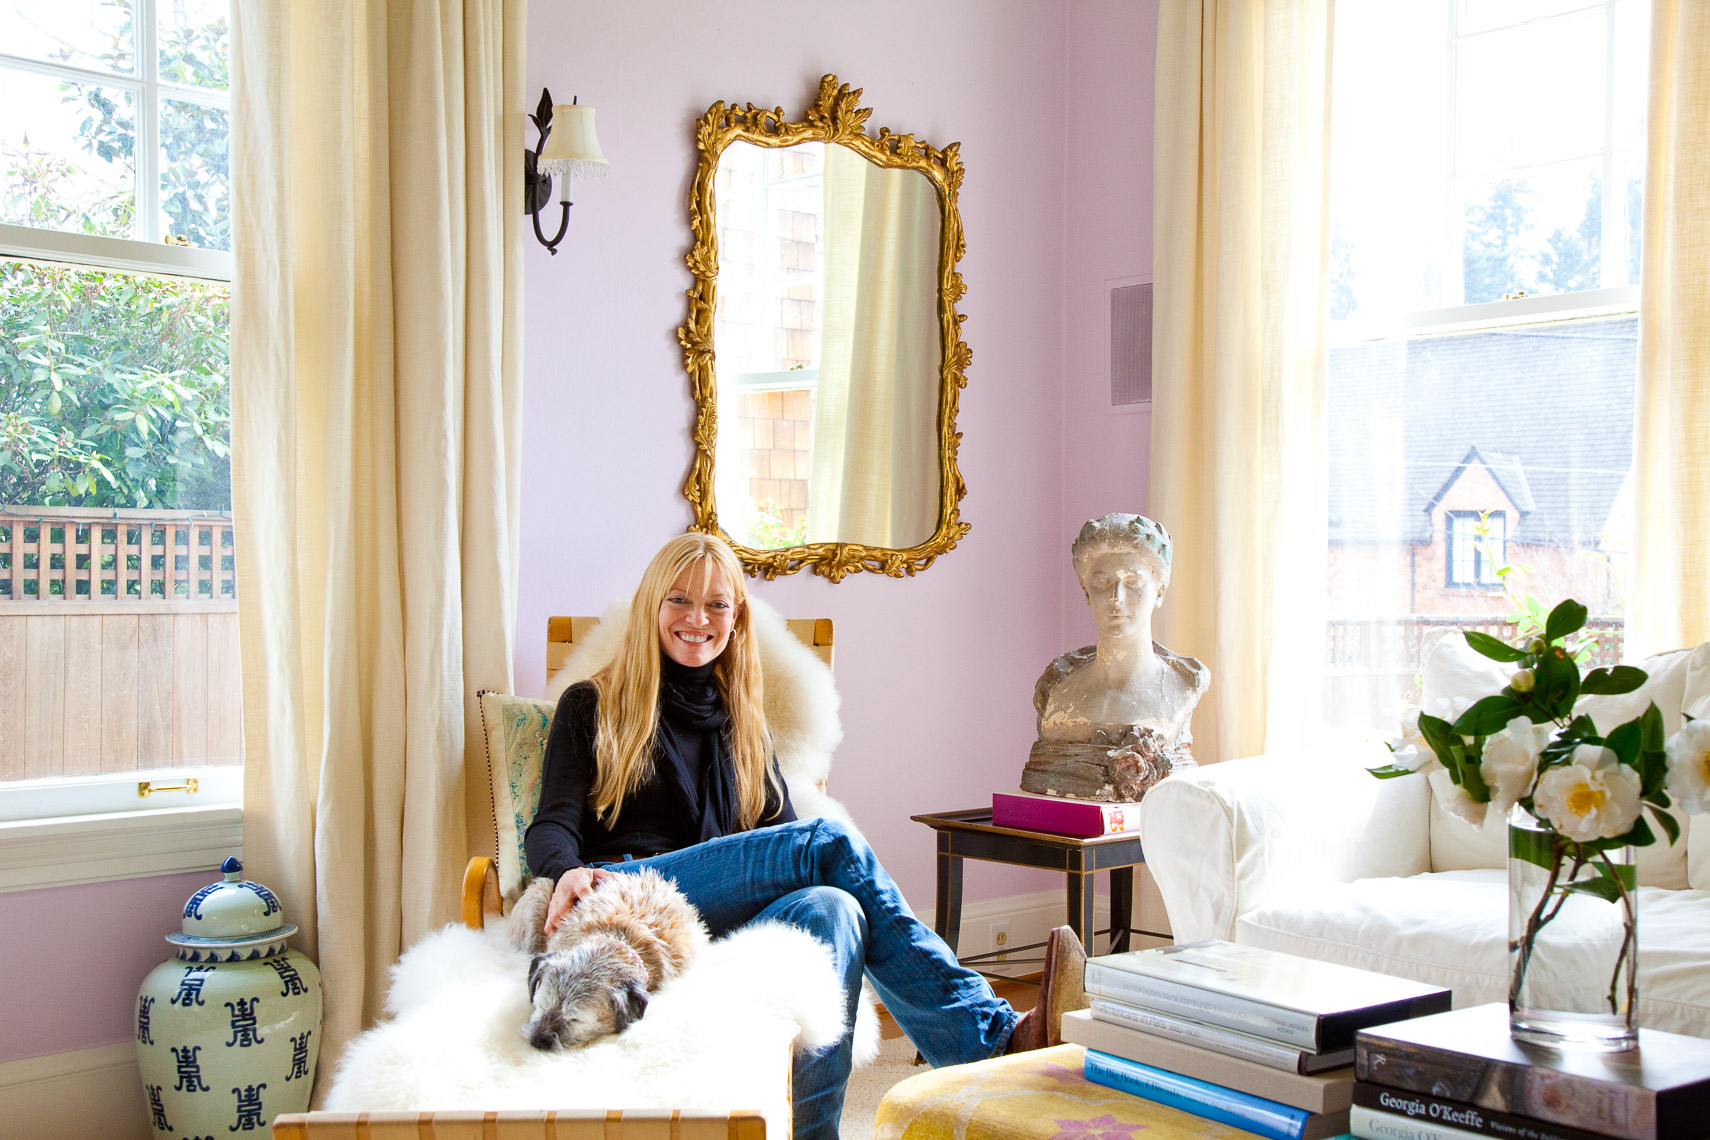 At Home with Wendy Burden